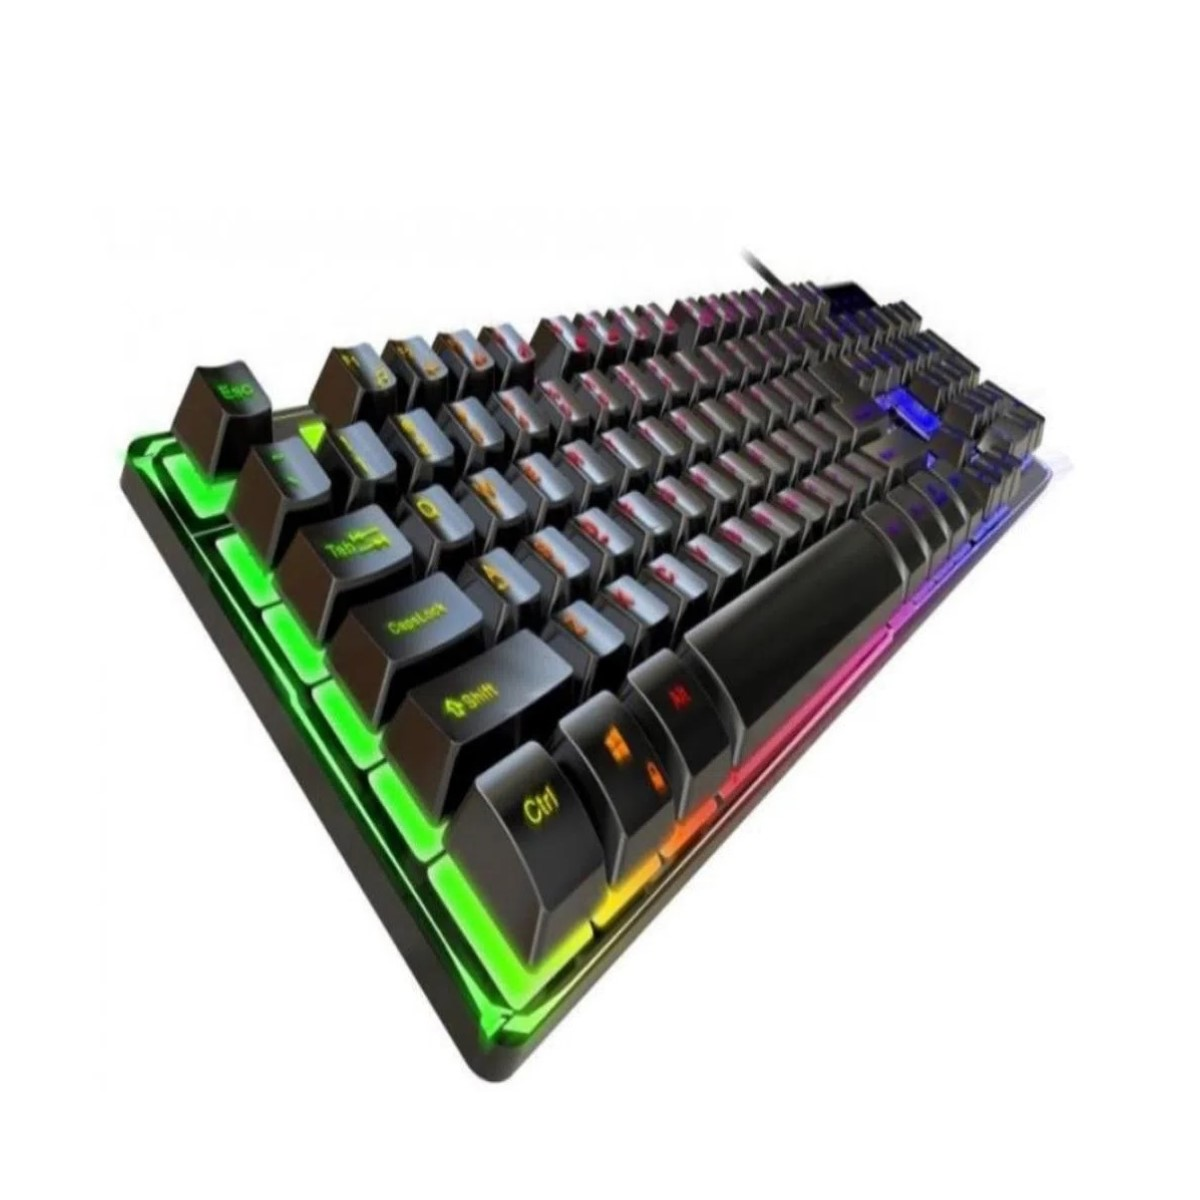 Teclado Gamer Genius Scorpion K8